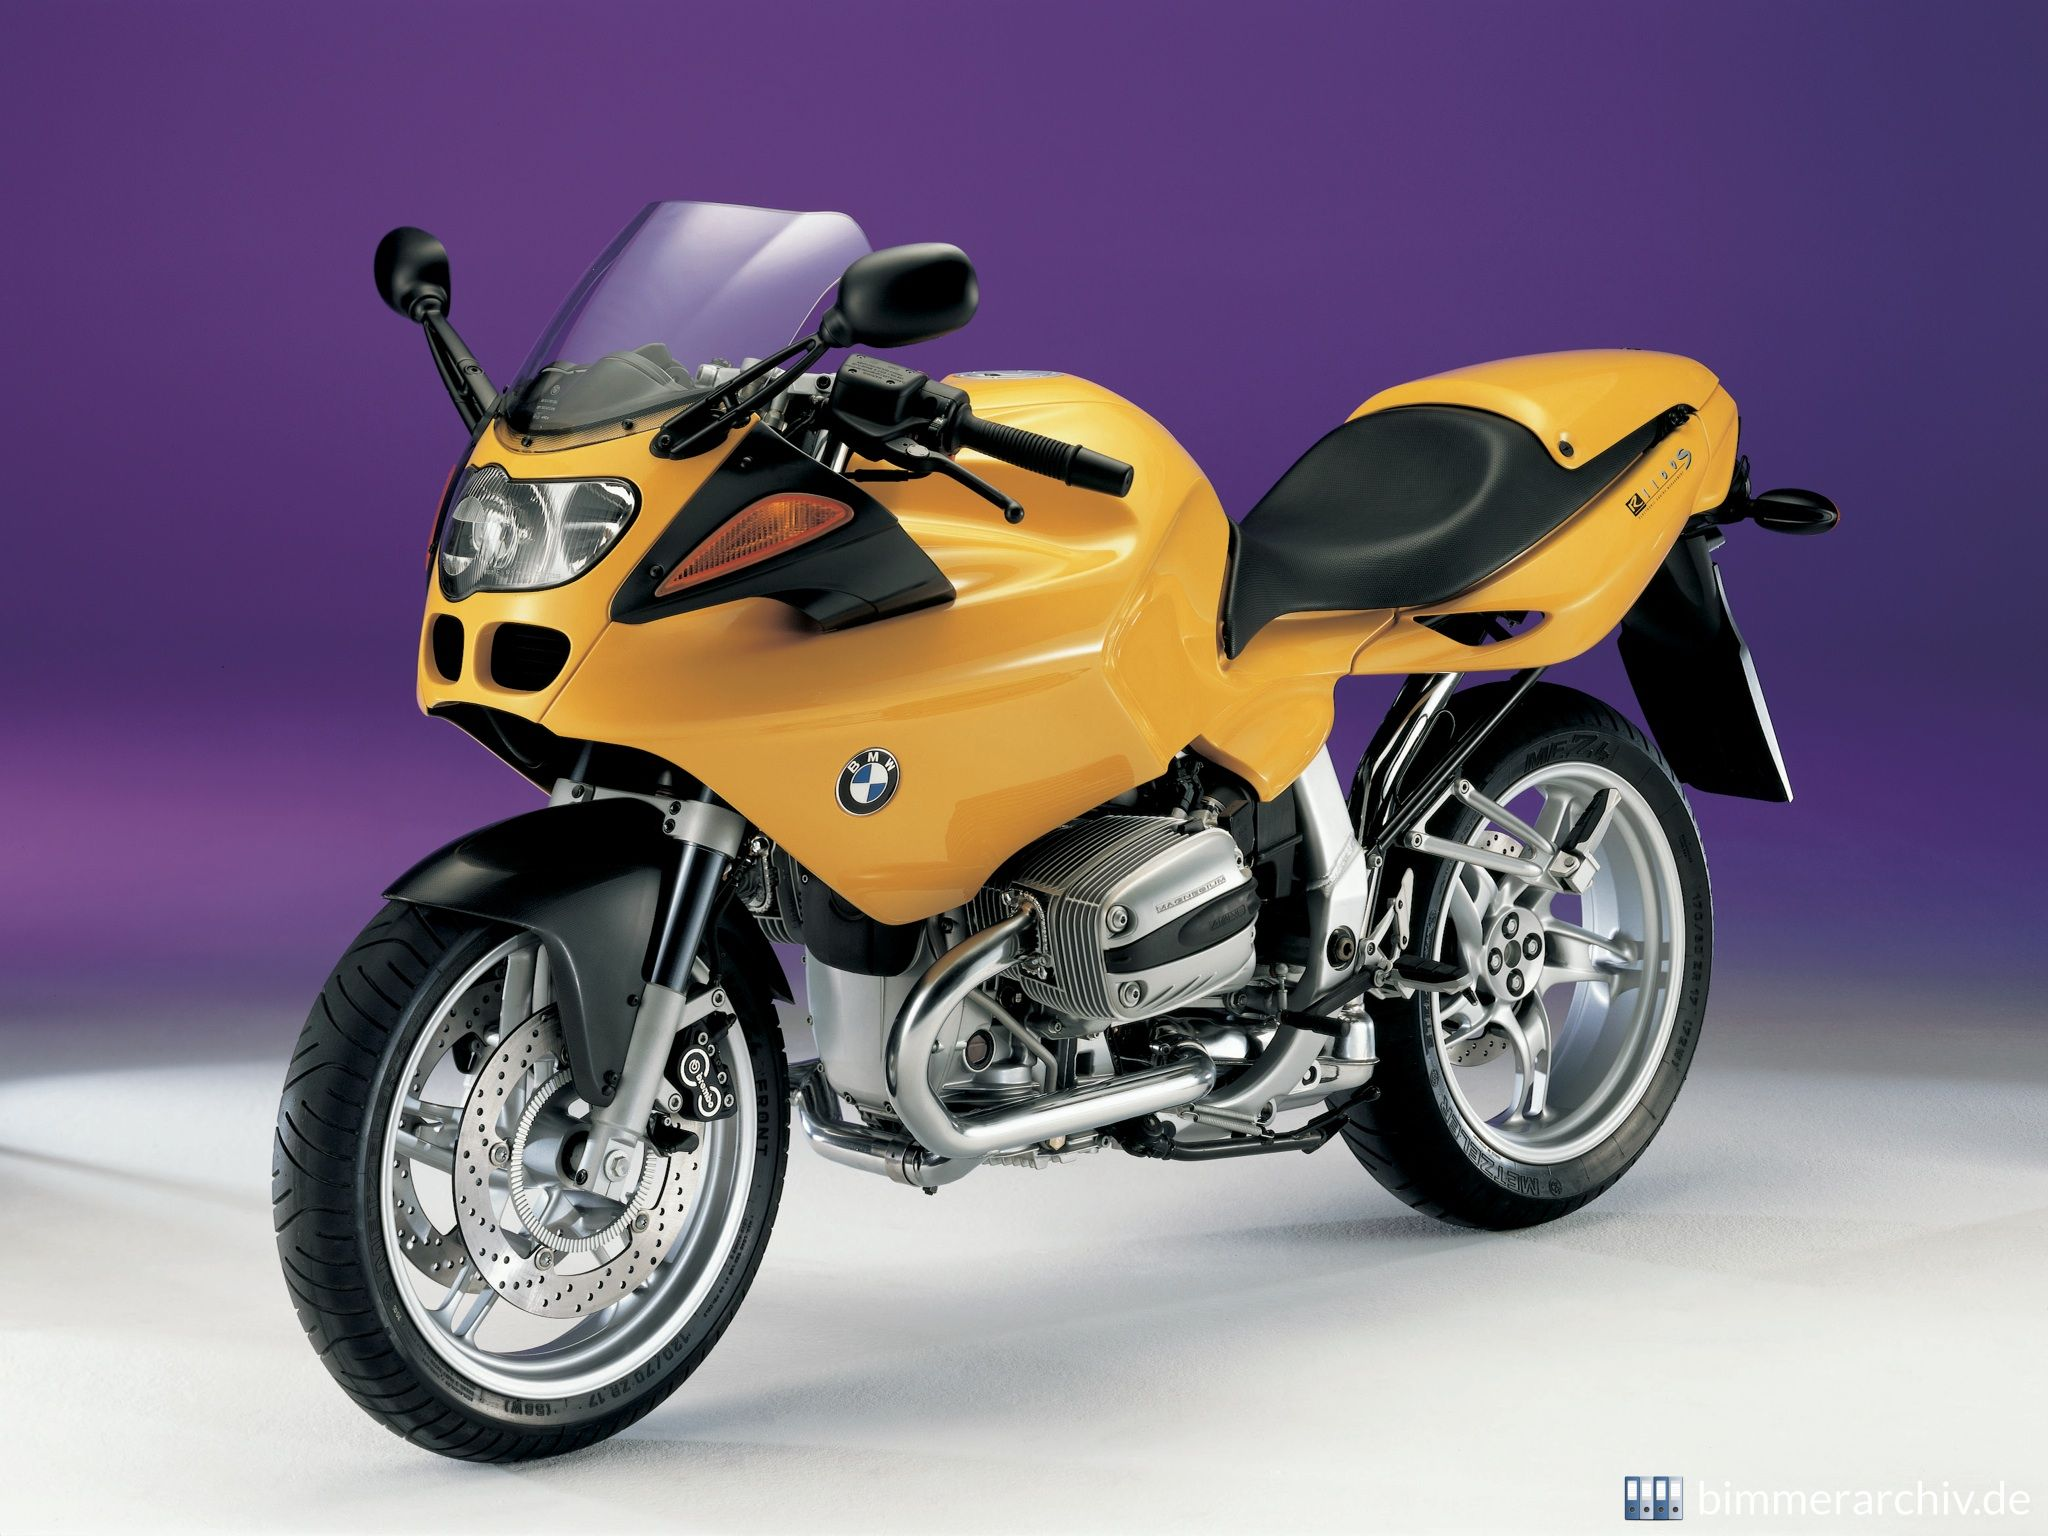 Model Archive For Bmw Models Bmw R 1100 S Bmwarchive Org